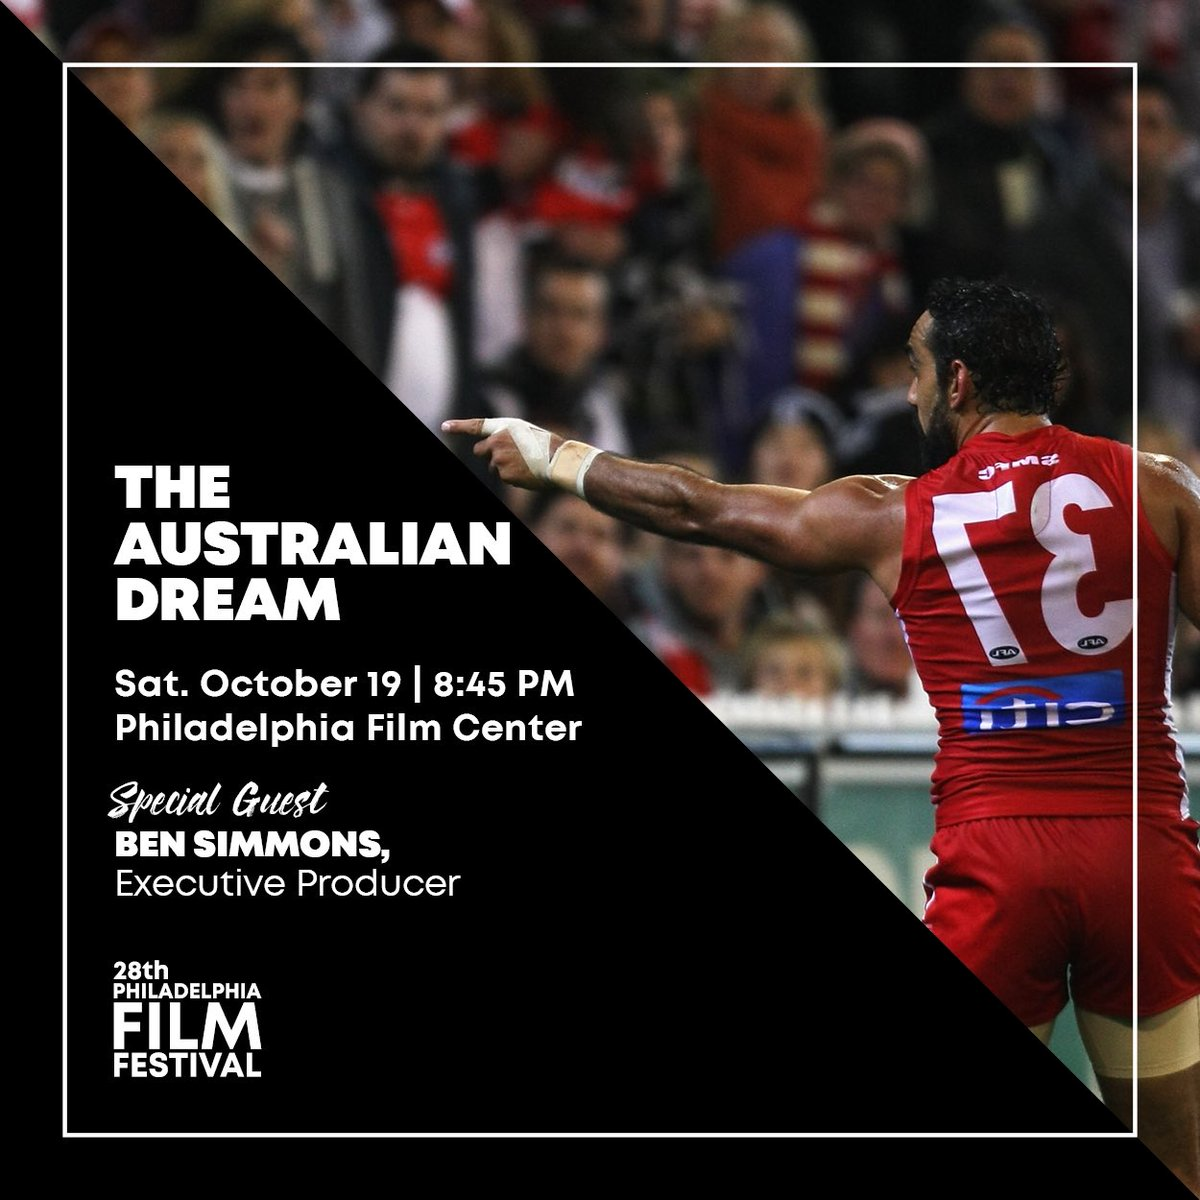 I'm really excited to be screening @AusDreamFilm at the @PhillyFilmSoc tomorrow night. To see the film with me tomorrow night visit -  https://t.co/svURg7MfC7 https://t.co/r3tONizNdm